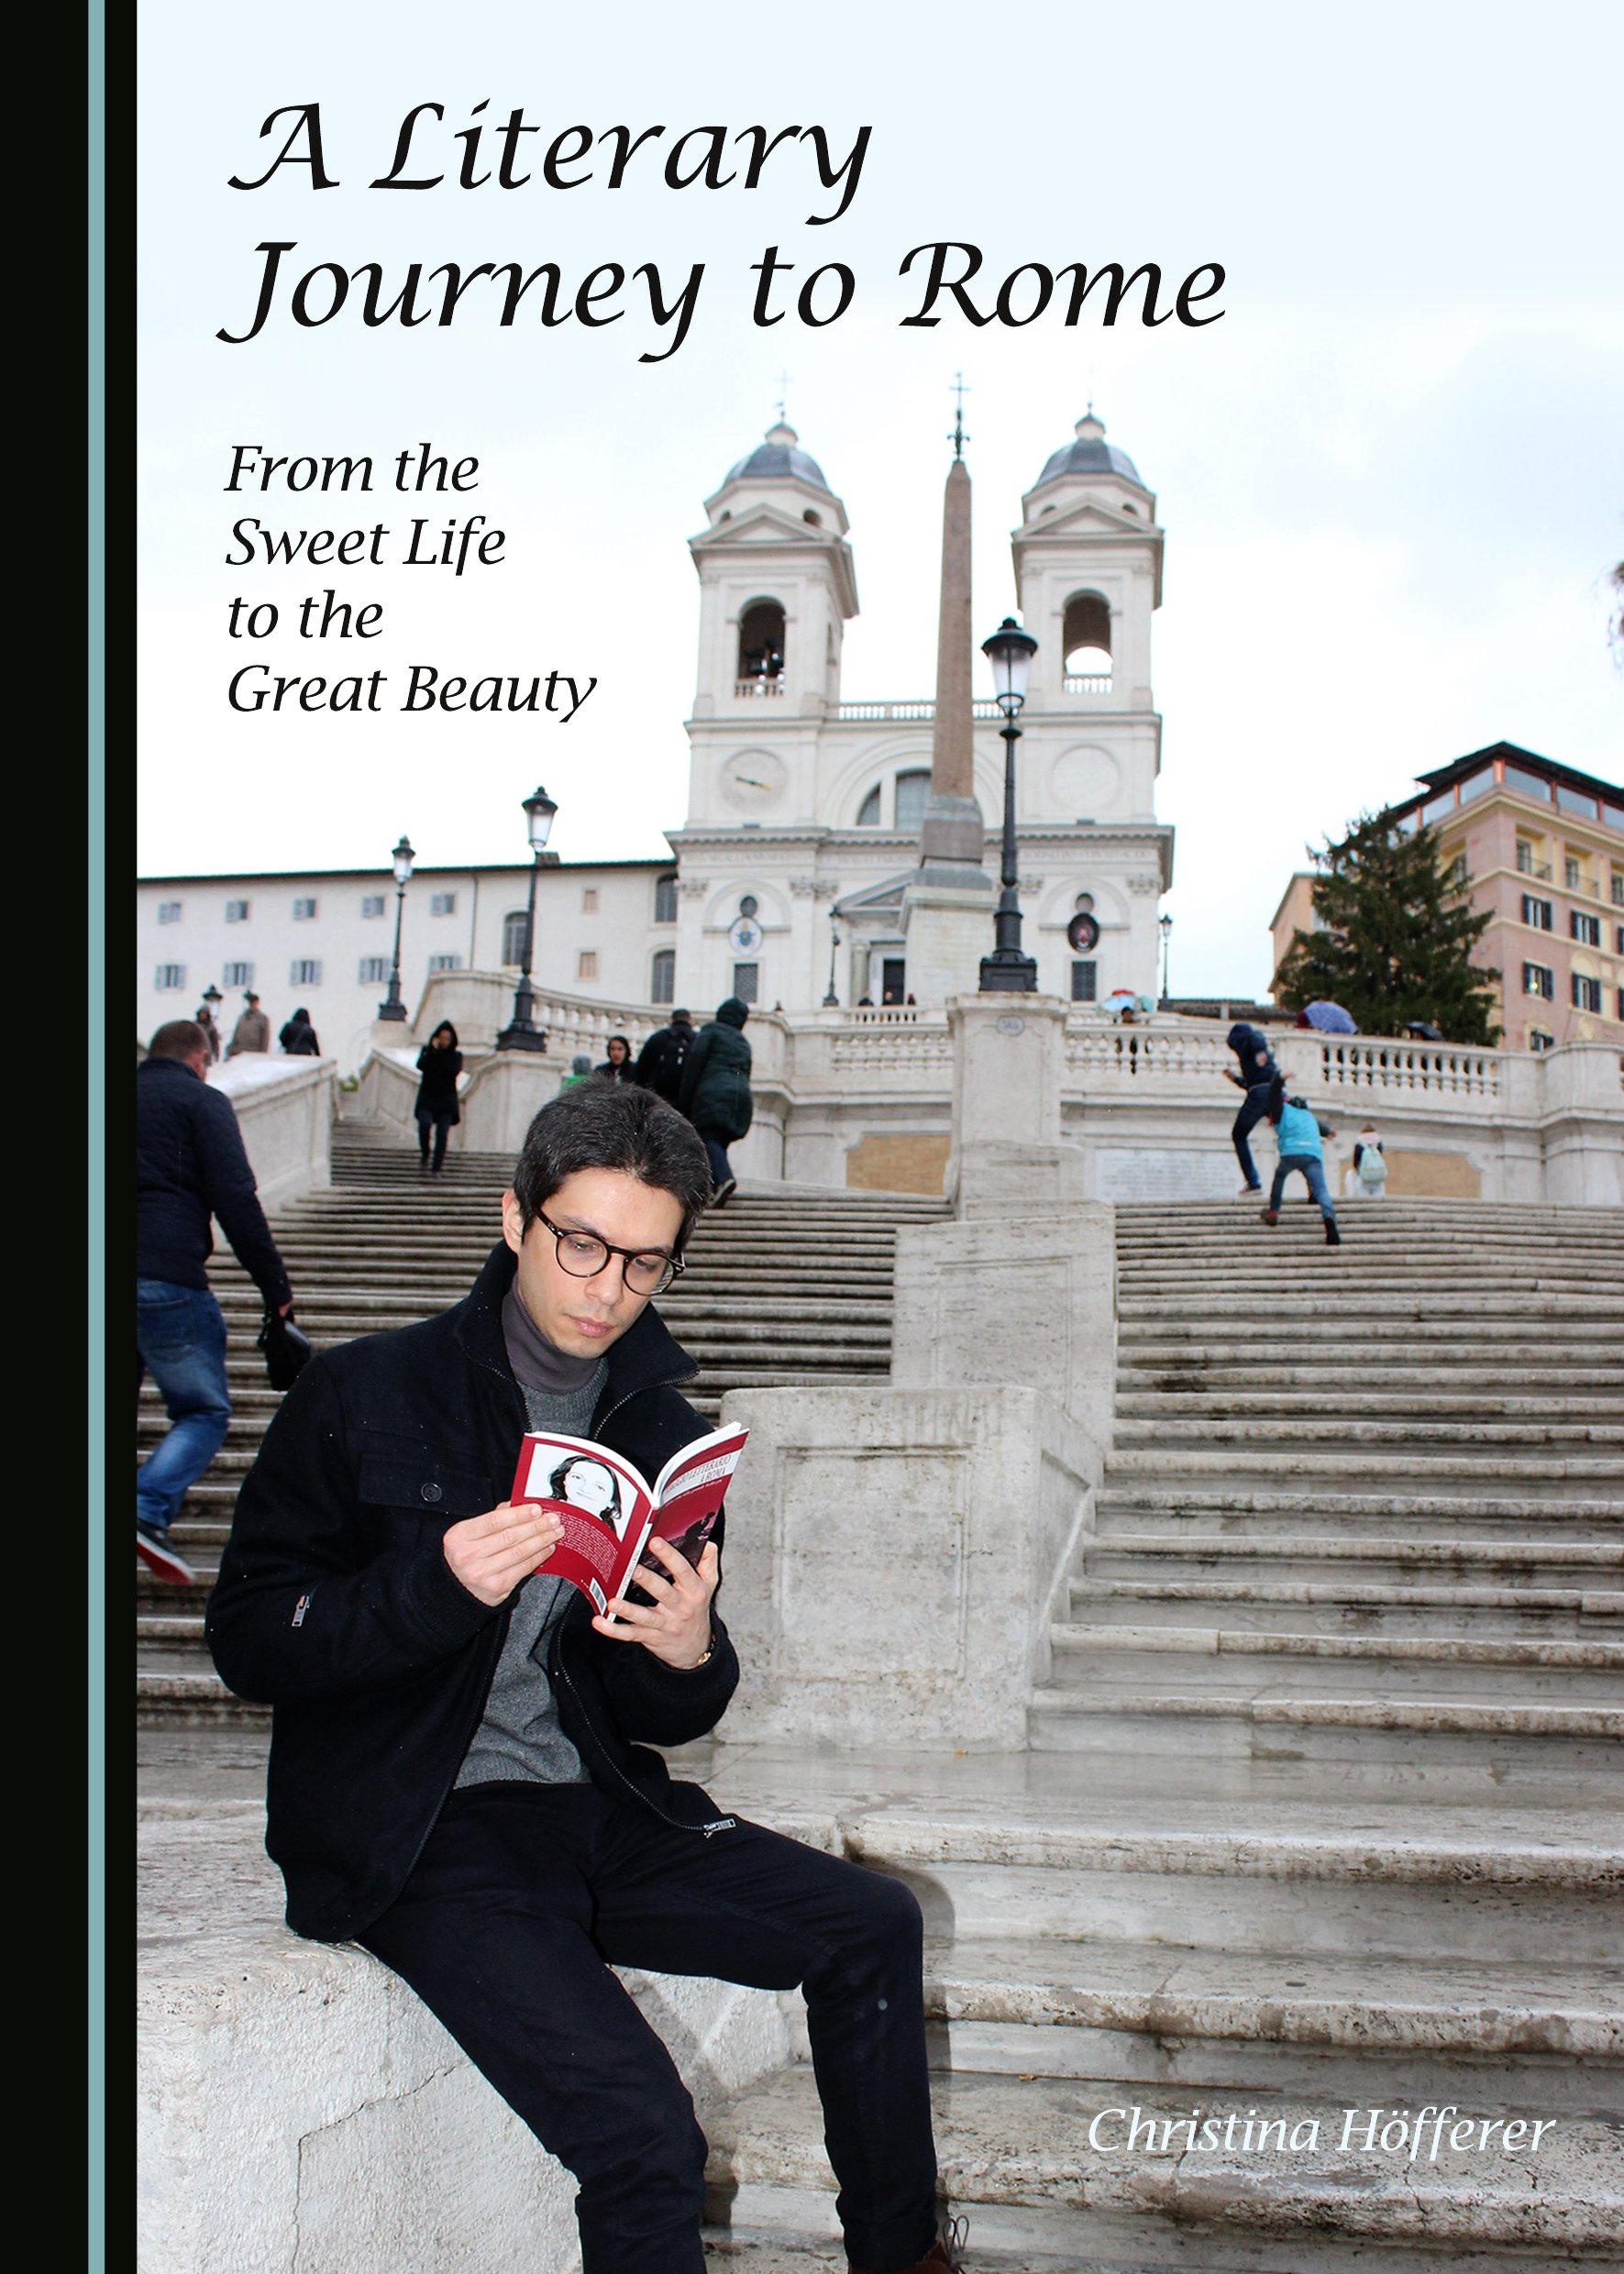 A Literary Journey to Rome: From the Sweet Life to the Great Beauty